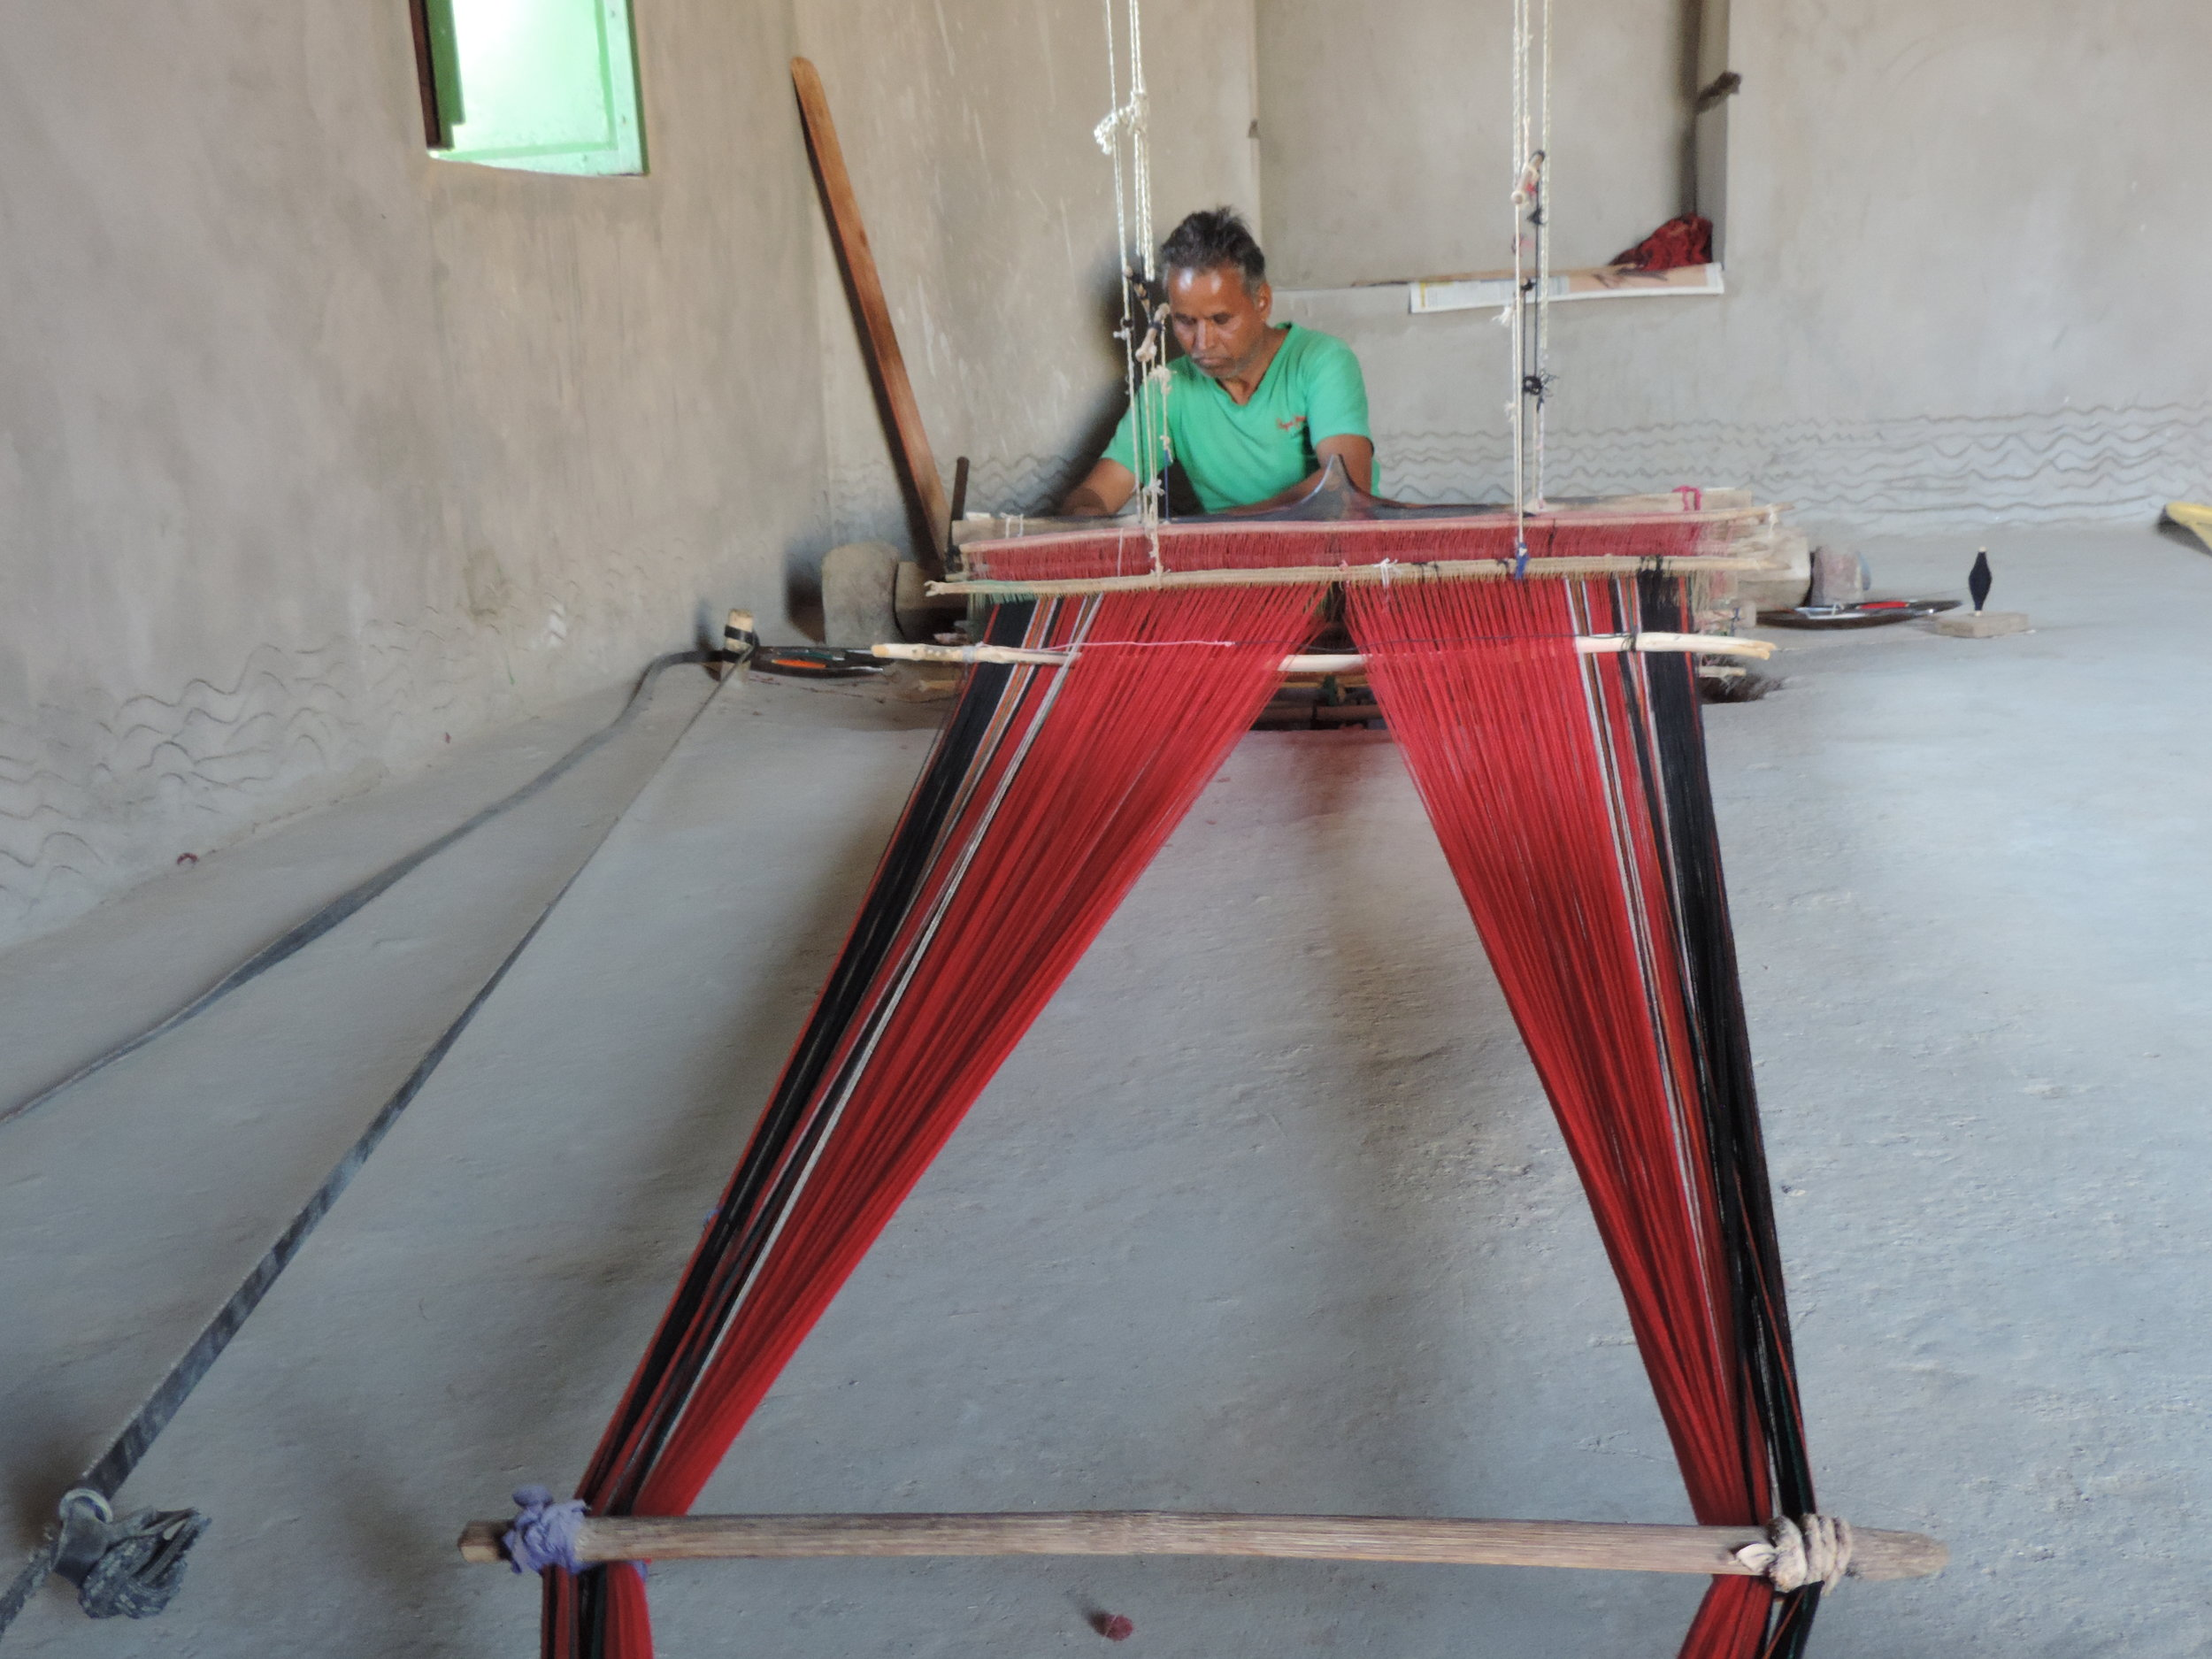 Anju Ram weaving our cotton throws on a traditional pitloom